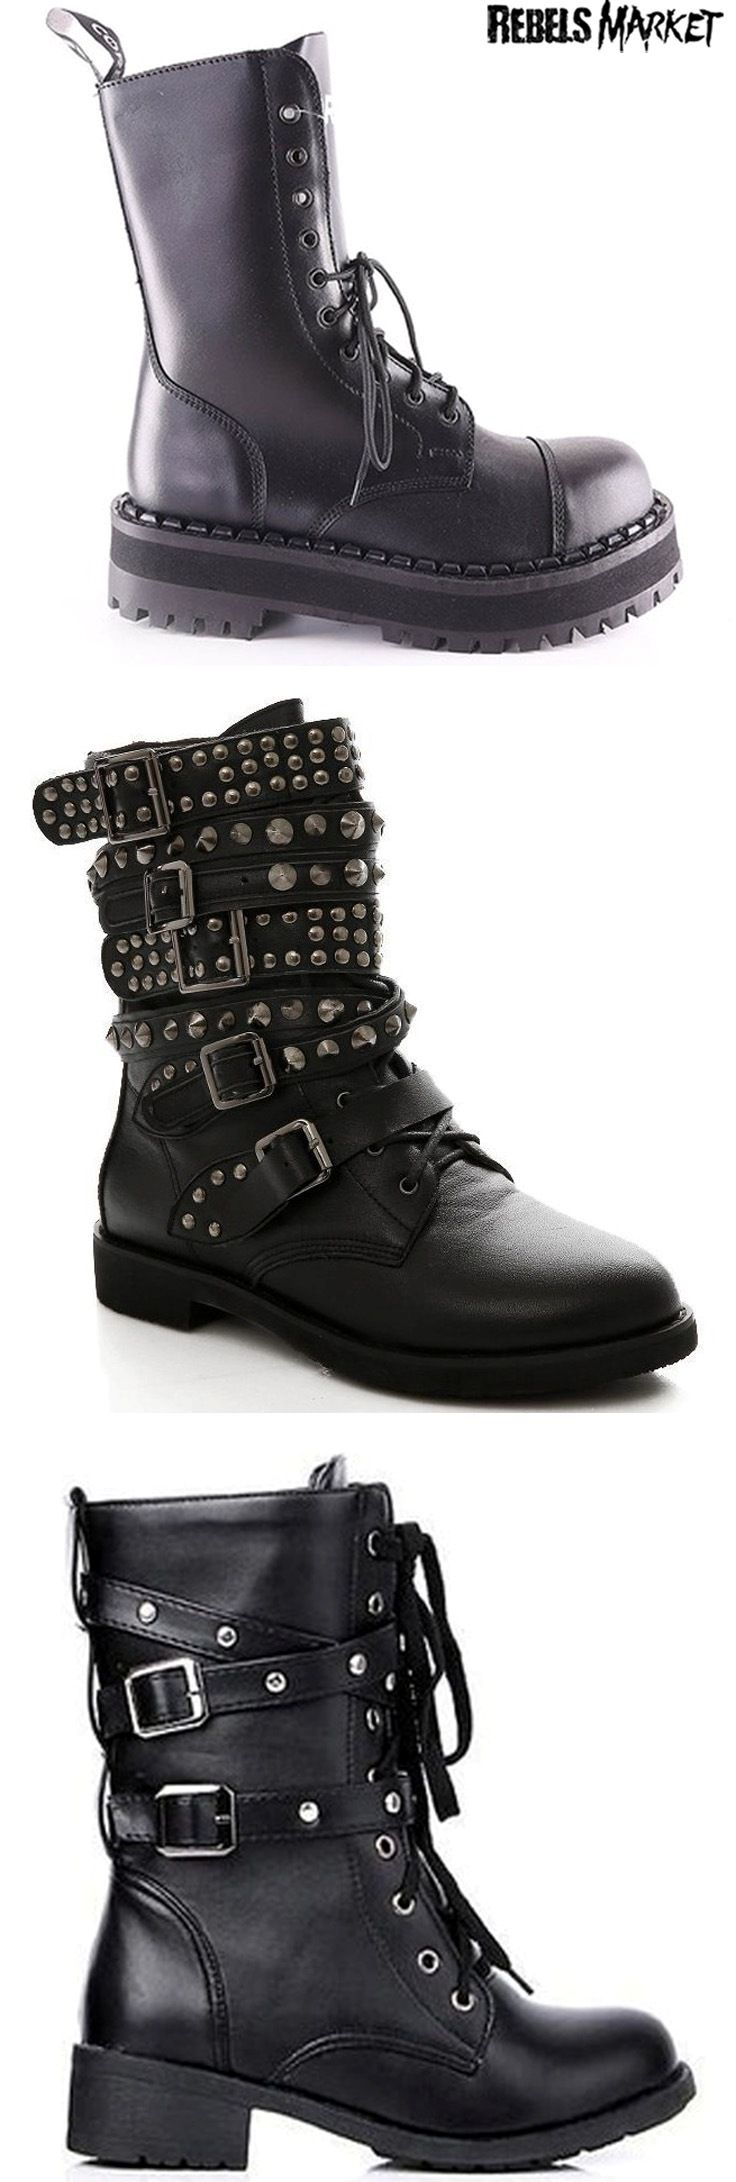 Shop punk boots at RebelsMarket!